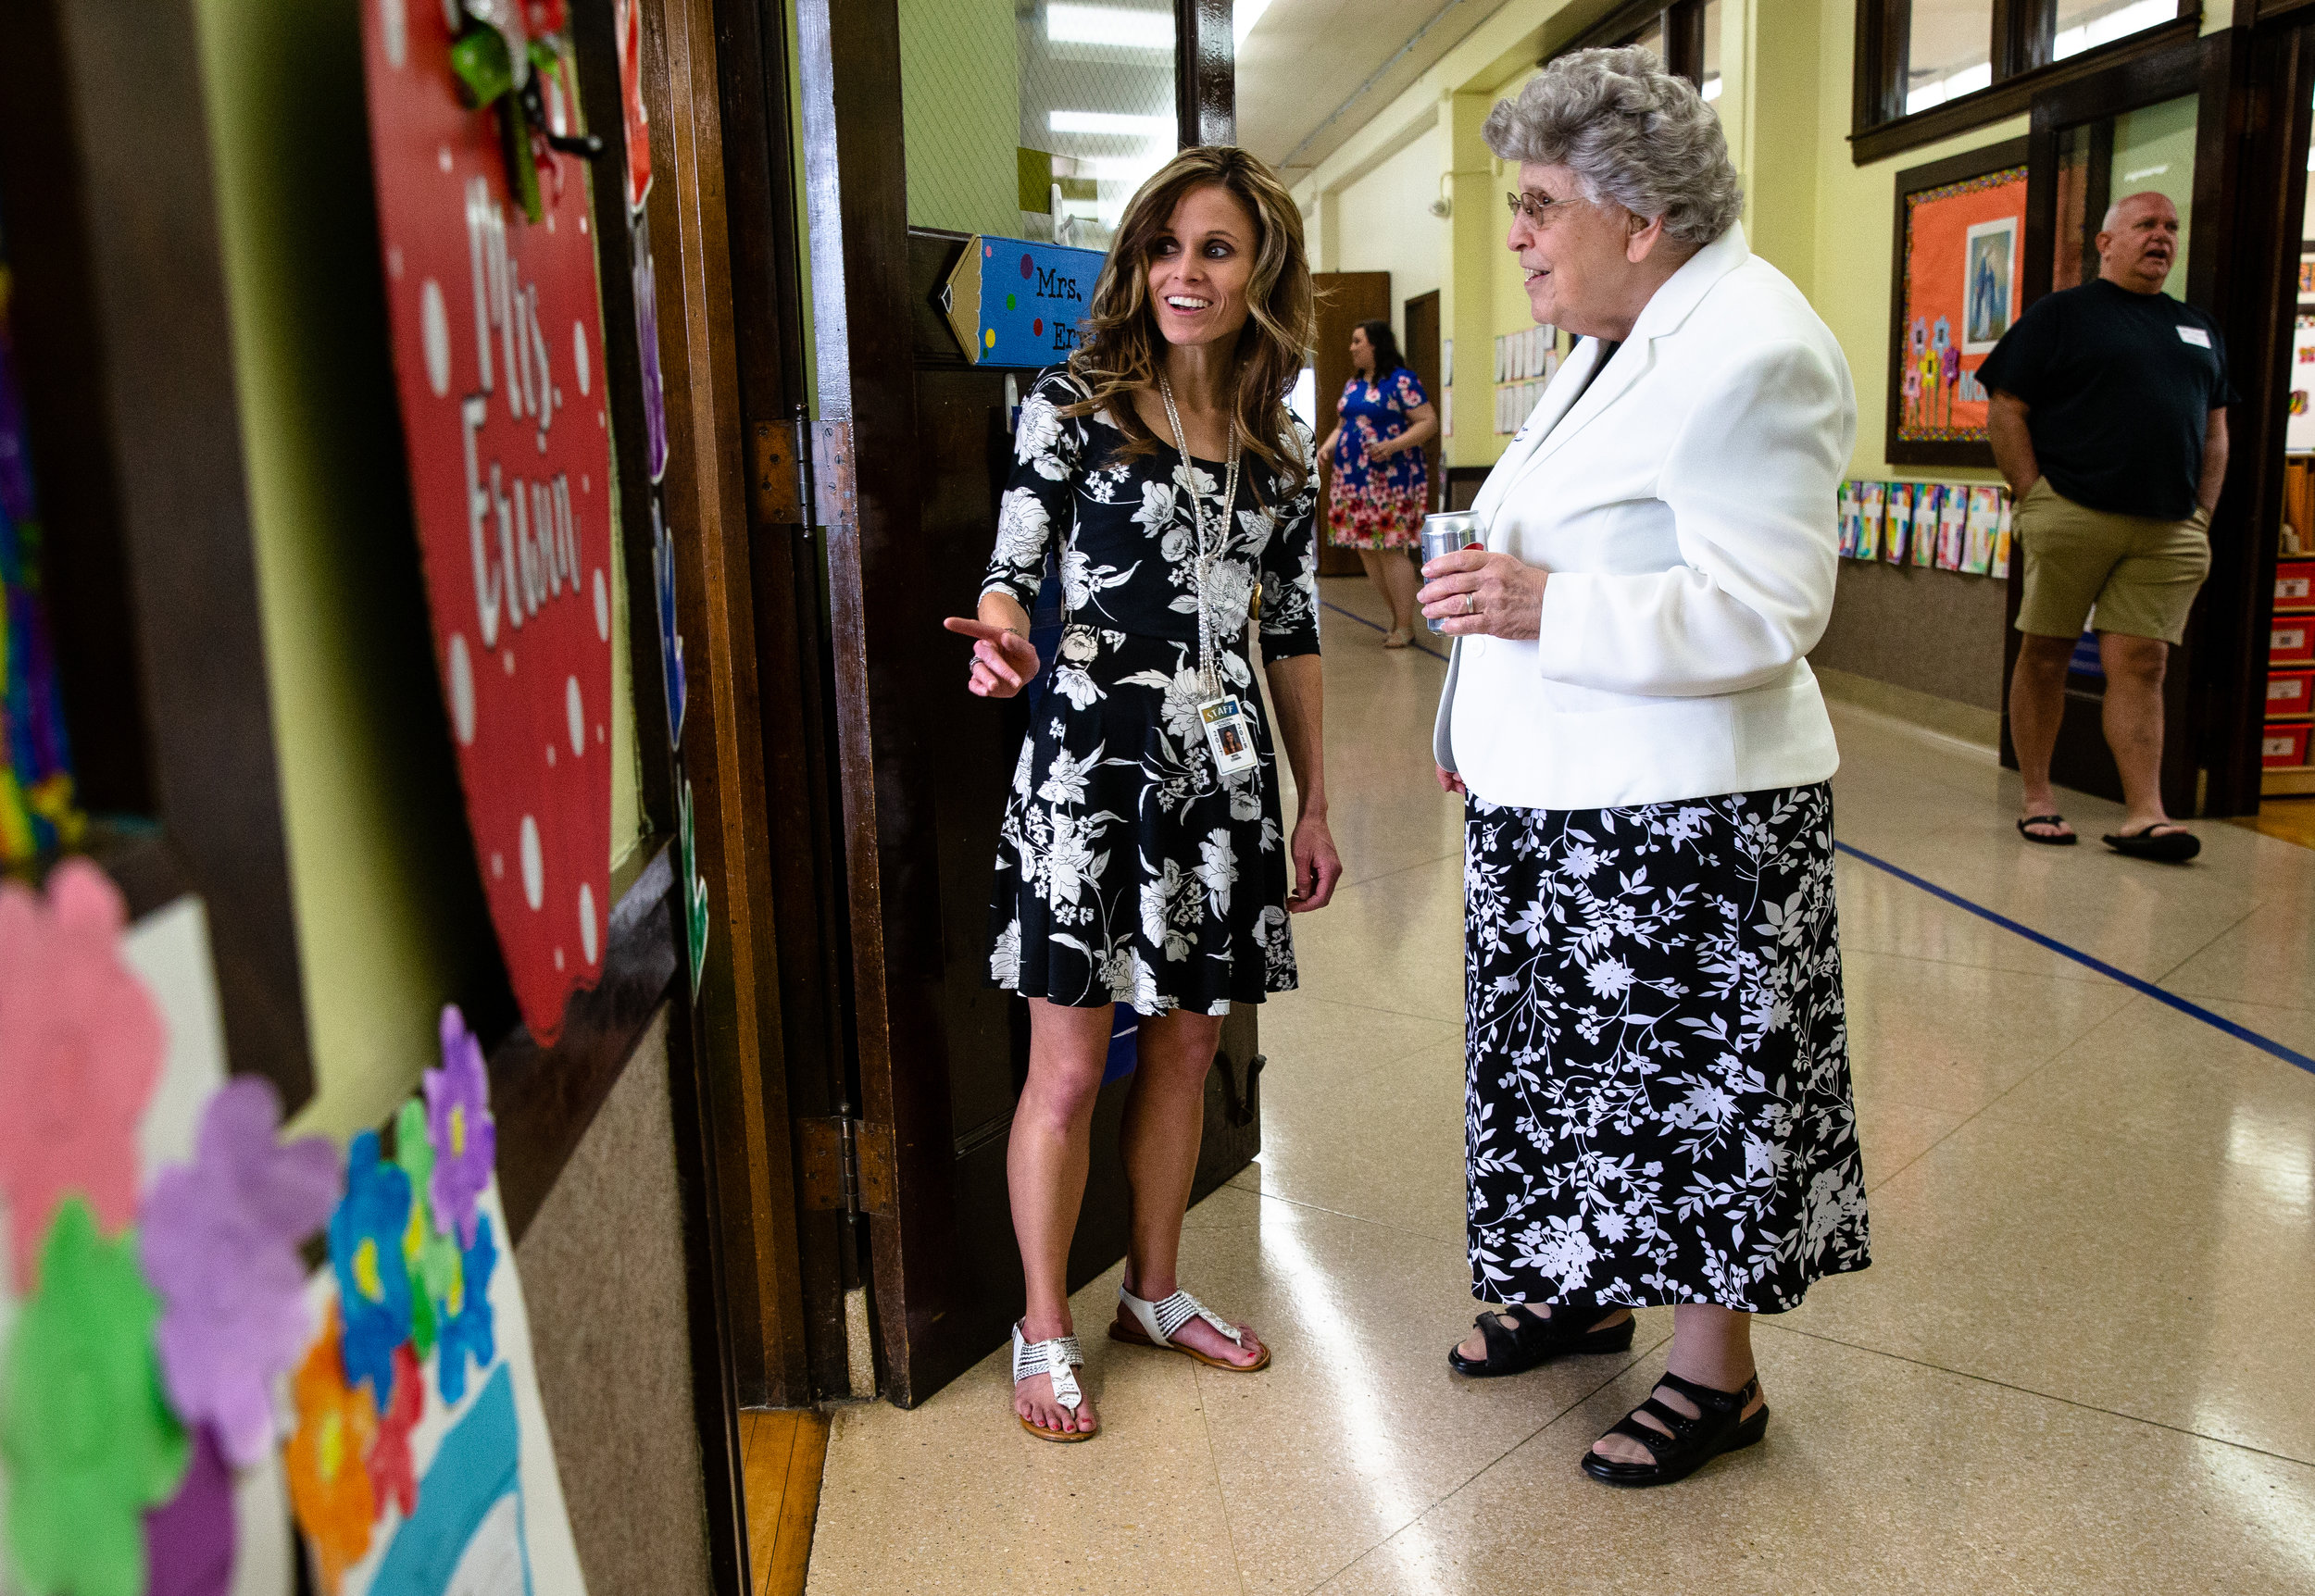 Sister Mary Linda Tonellato, right, a 1951 graduate of Cathedral School, talks with kindergarten teacher Beth Erwin, center, as she tours the school's classrooms during a farewell reception, Sunday, May 6, 2018, in Springfield, Ill. The Diocese of Springfield announced earlier this year that they would close the school after the end of the the school year citing declines in enrollment and the funds to operate the school. [Justin L. Fowler/The State Journal-Register]